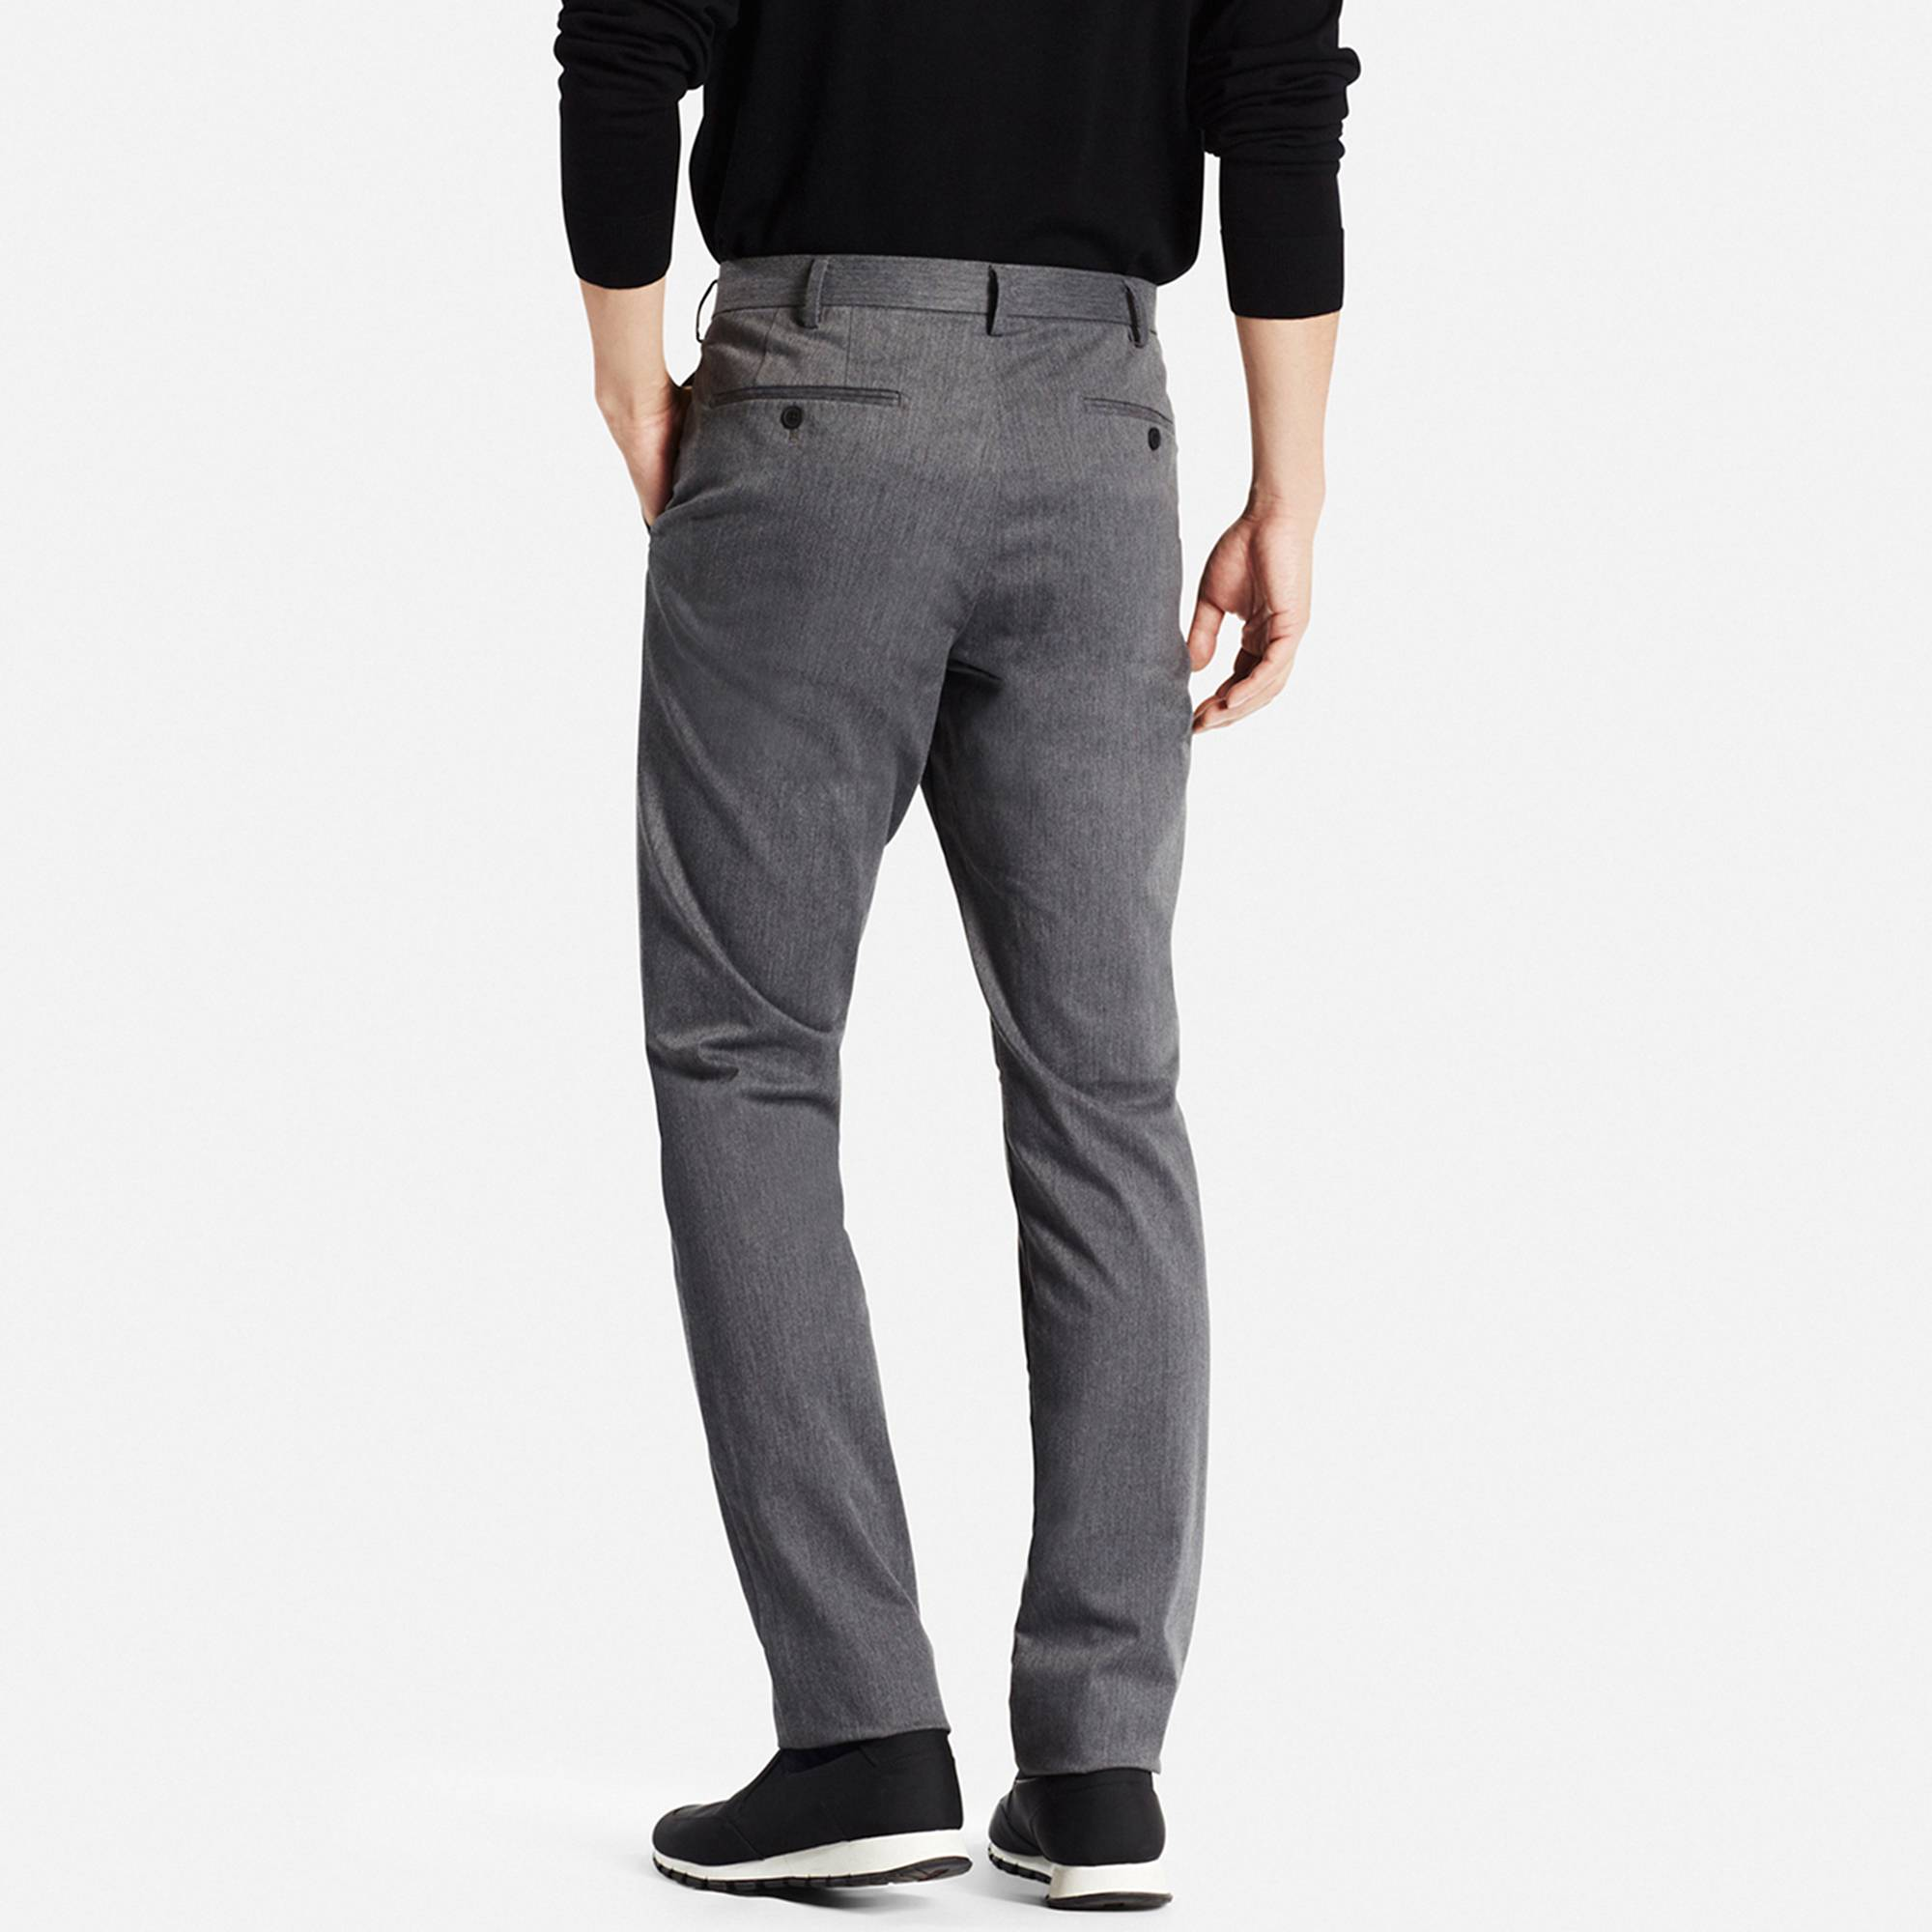 slim fit pants men slim fit chino flat front pants, dark gray, small CYKOSNG